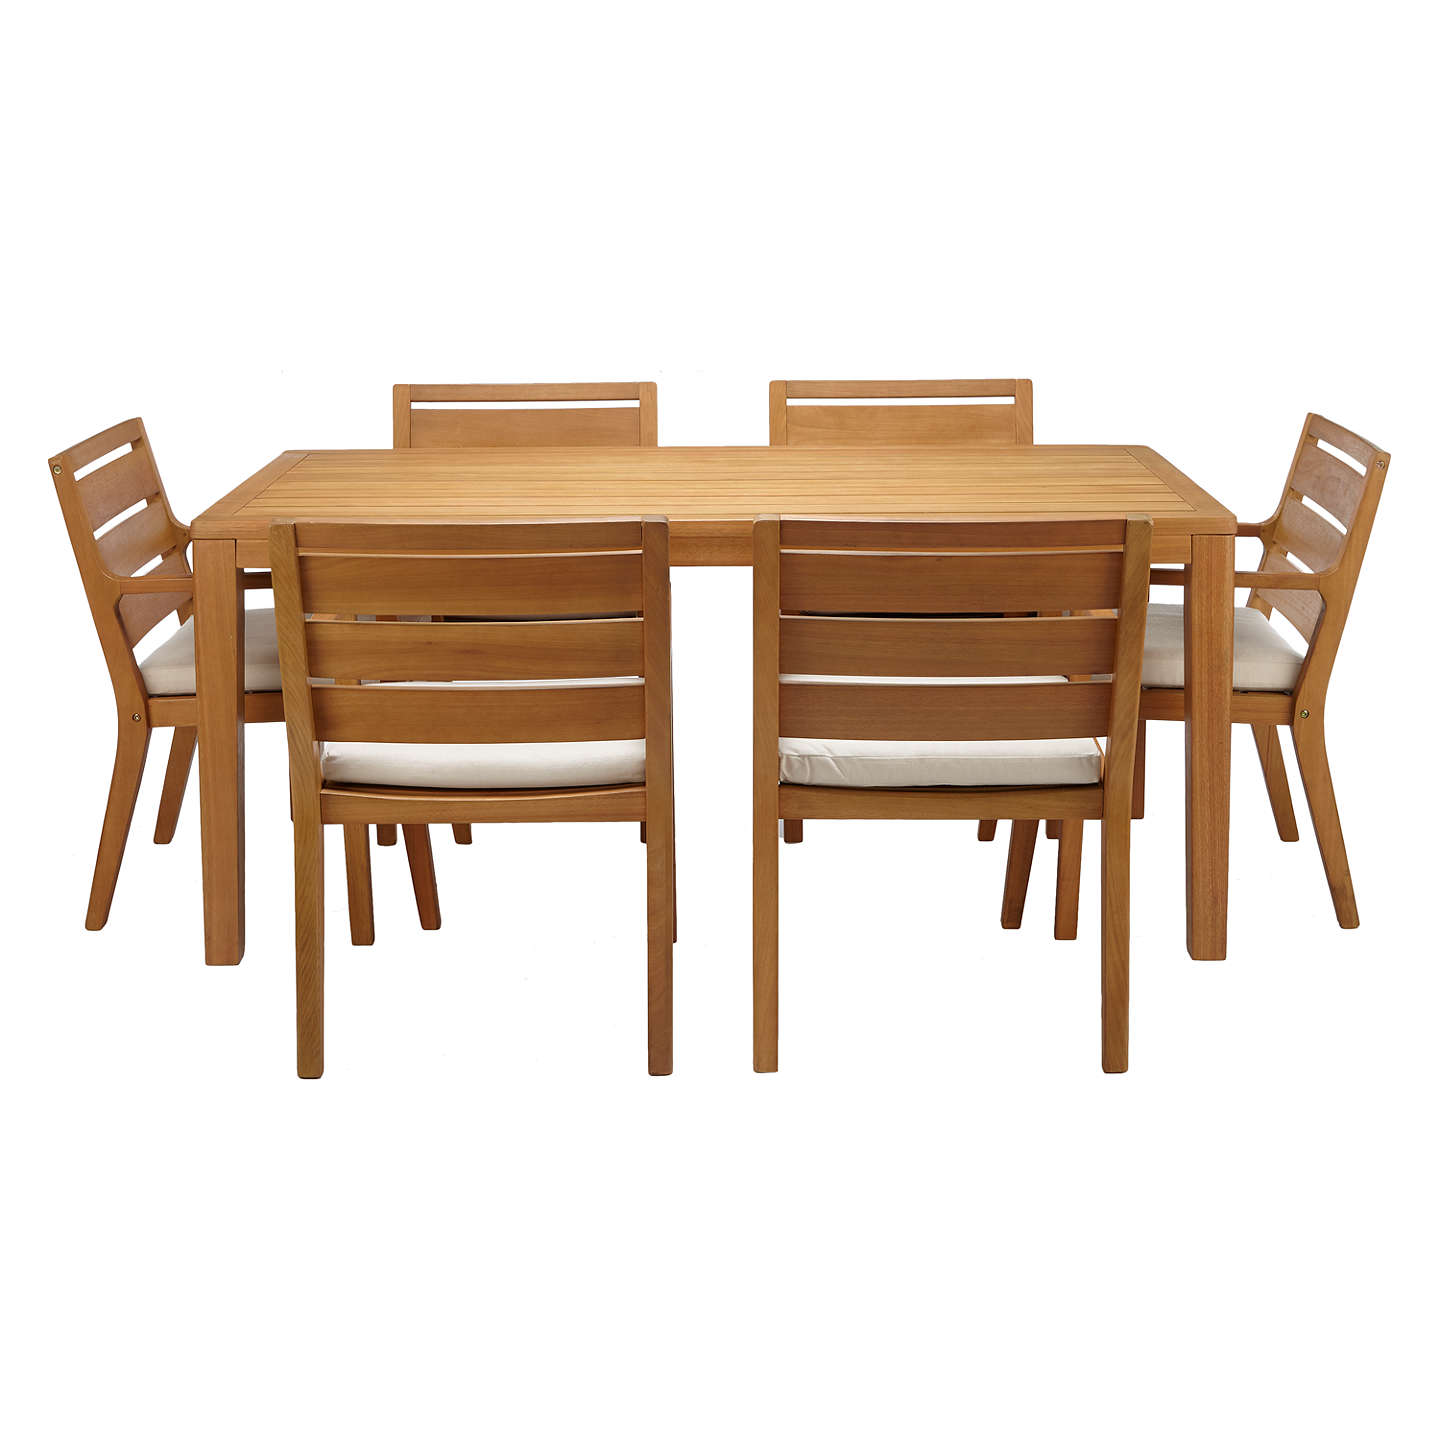 John Lewis Alta 6 Seat Garden Dining Table / Chairs Set